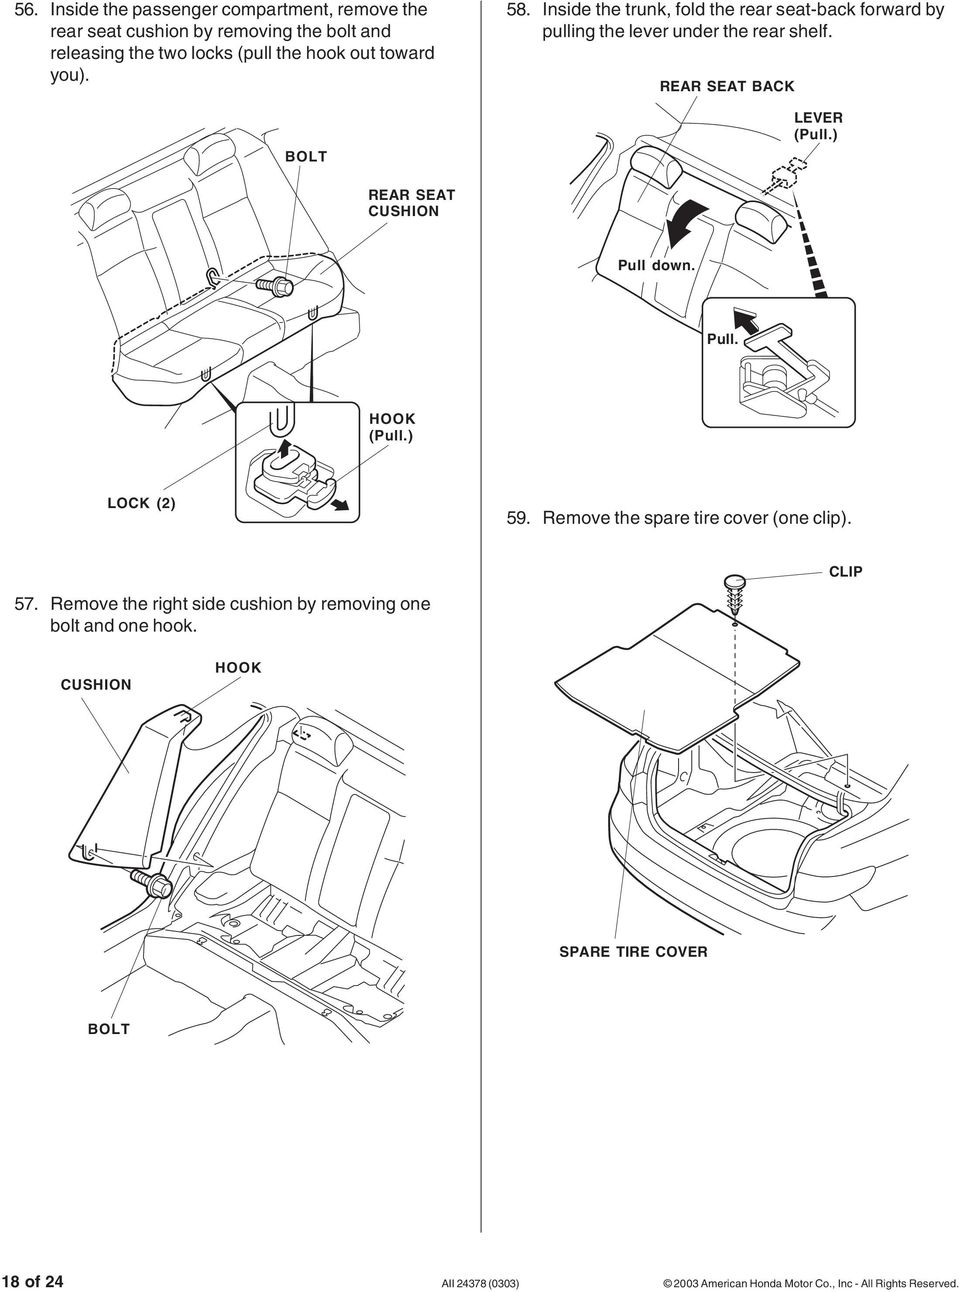 ) REAR SEAT CUSHION Pull down. Pull. HOOK (Pull.) 2527040M LOCK (2) 59. Remove the spare tire cover (one clip). 2226040K 57.